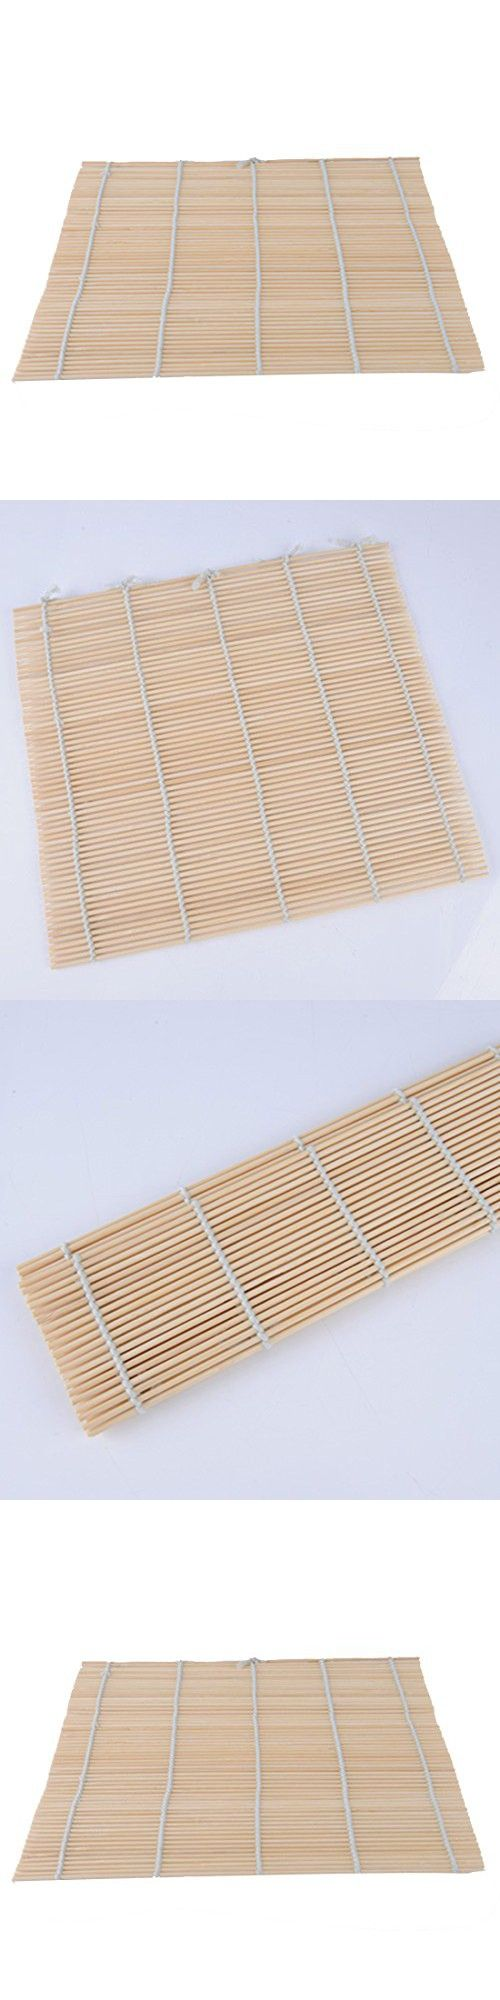 Bamboo Sushi Roller Mat Kitchen Tools